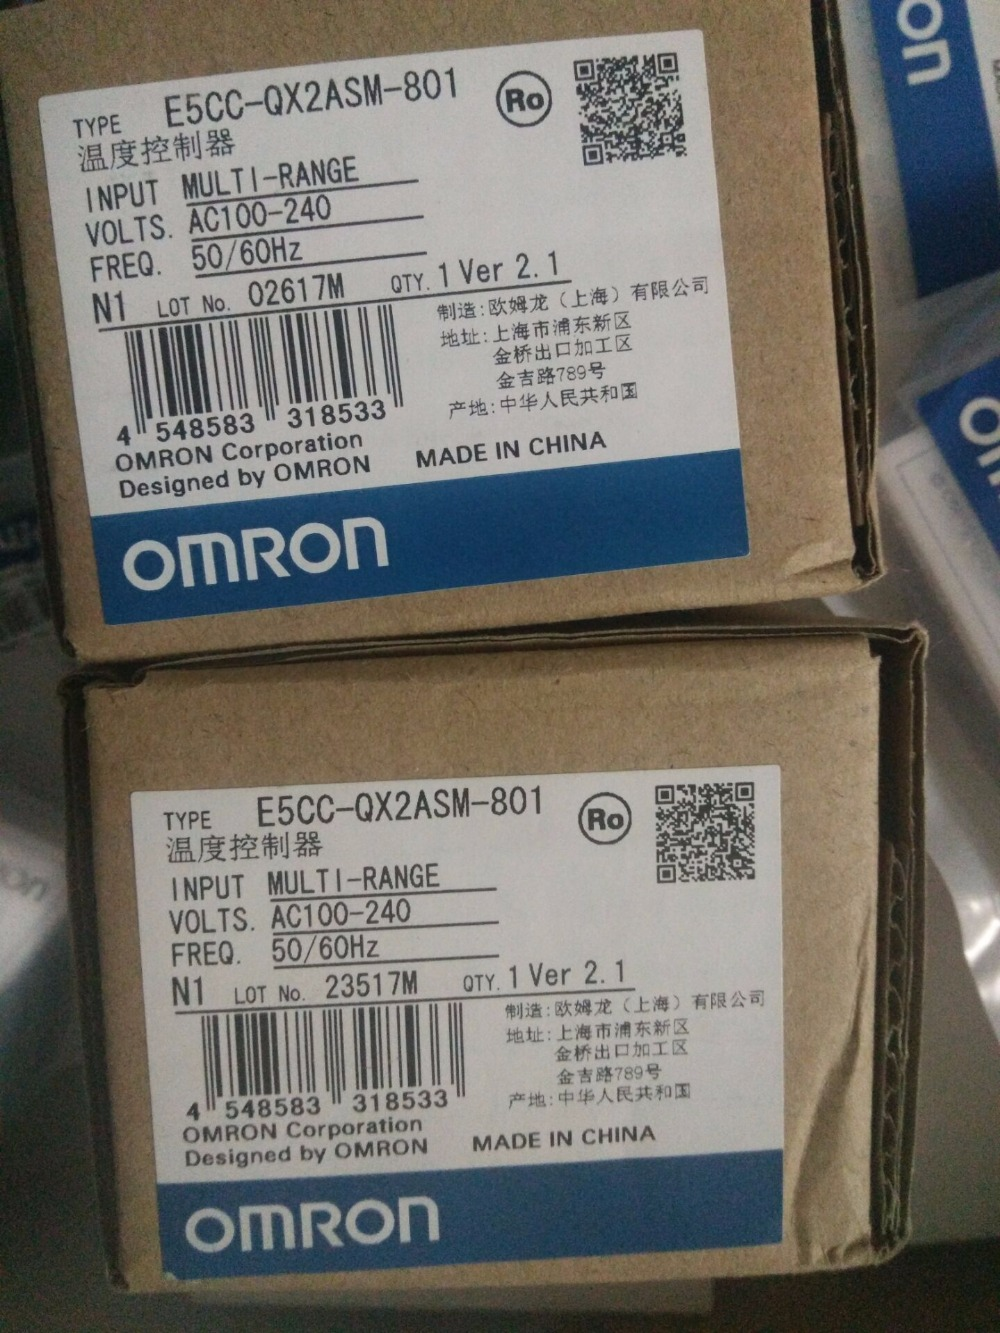 1pc E5CC-RX2ASM-801 OMR Temperature Controller, E5CCRX2ASM801 Sensor NEW in Box, E5CC RX2ASM 801 все цены